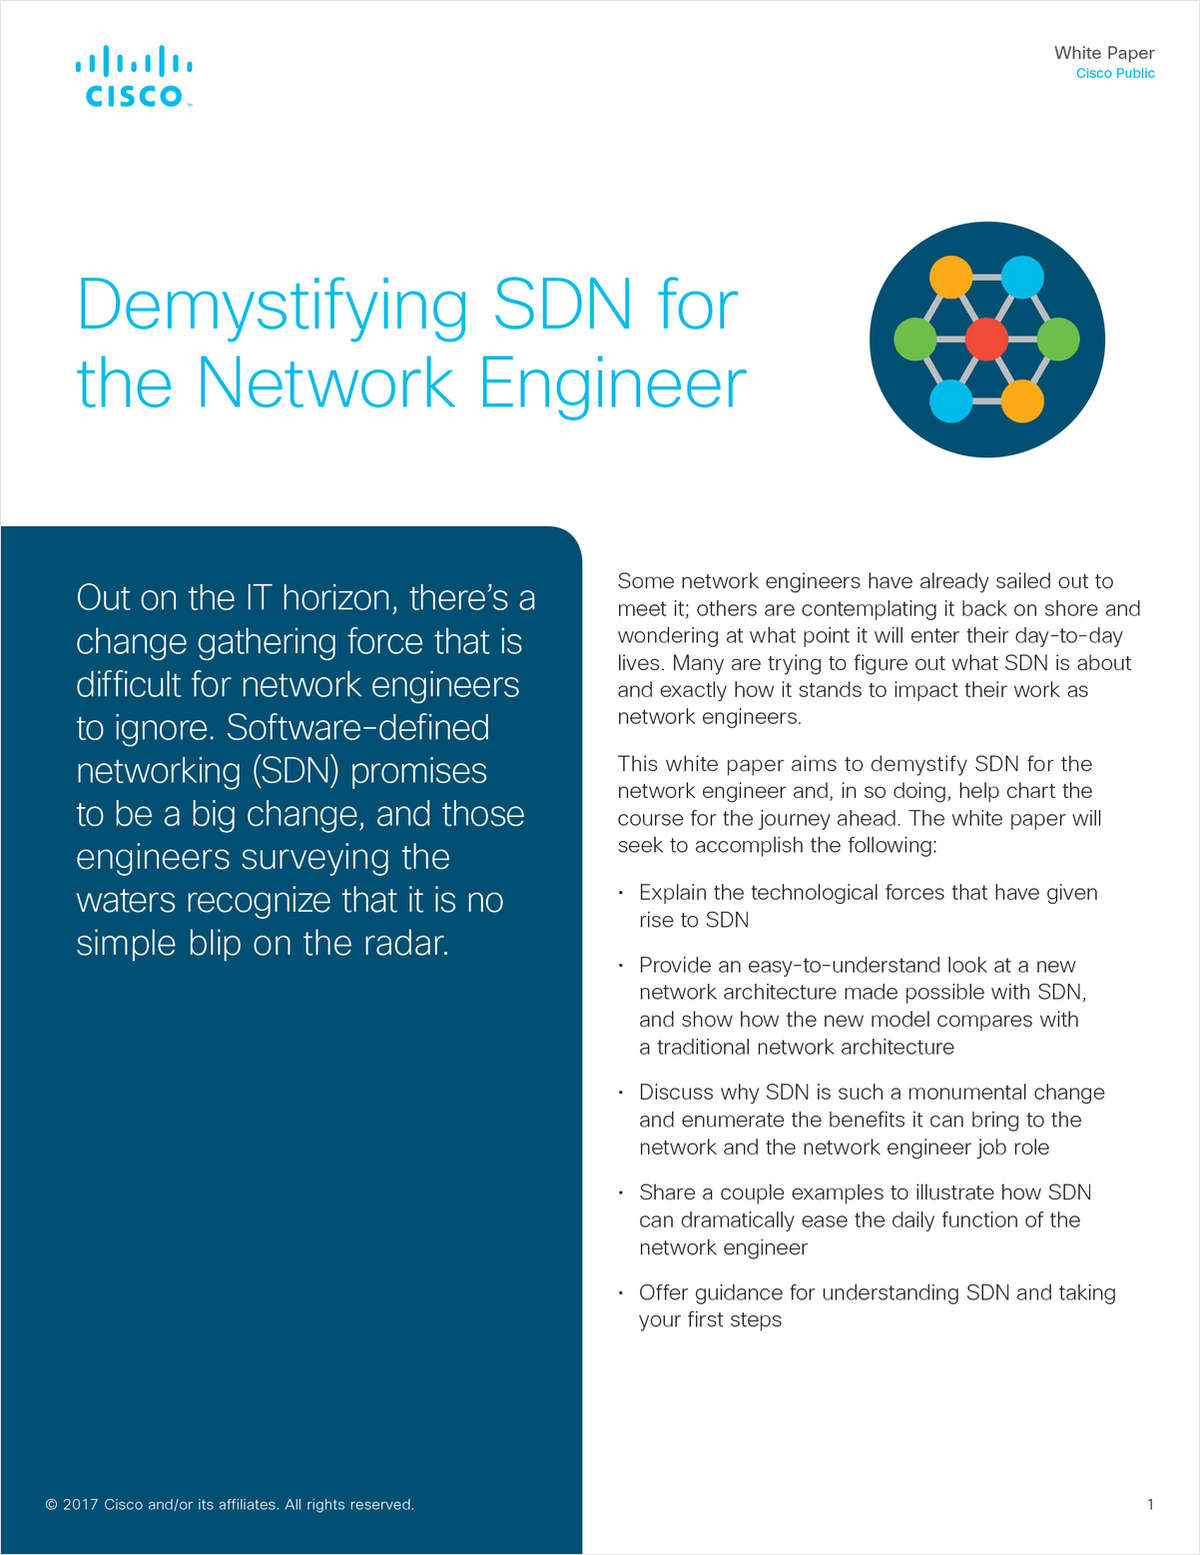 Demystifying SDN for the Network Engineer